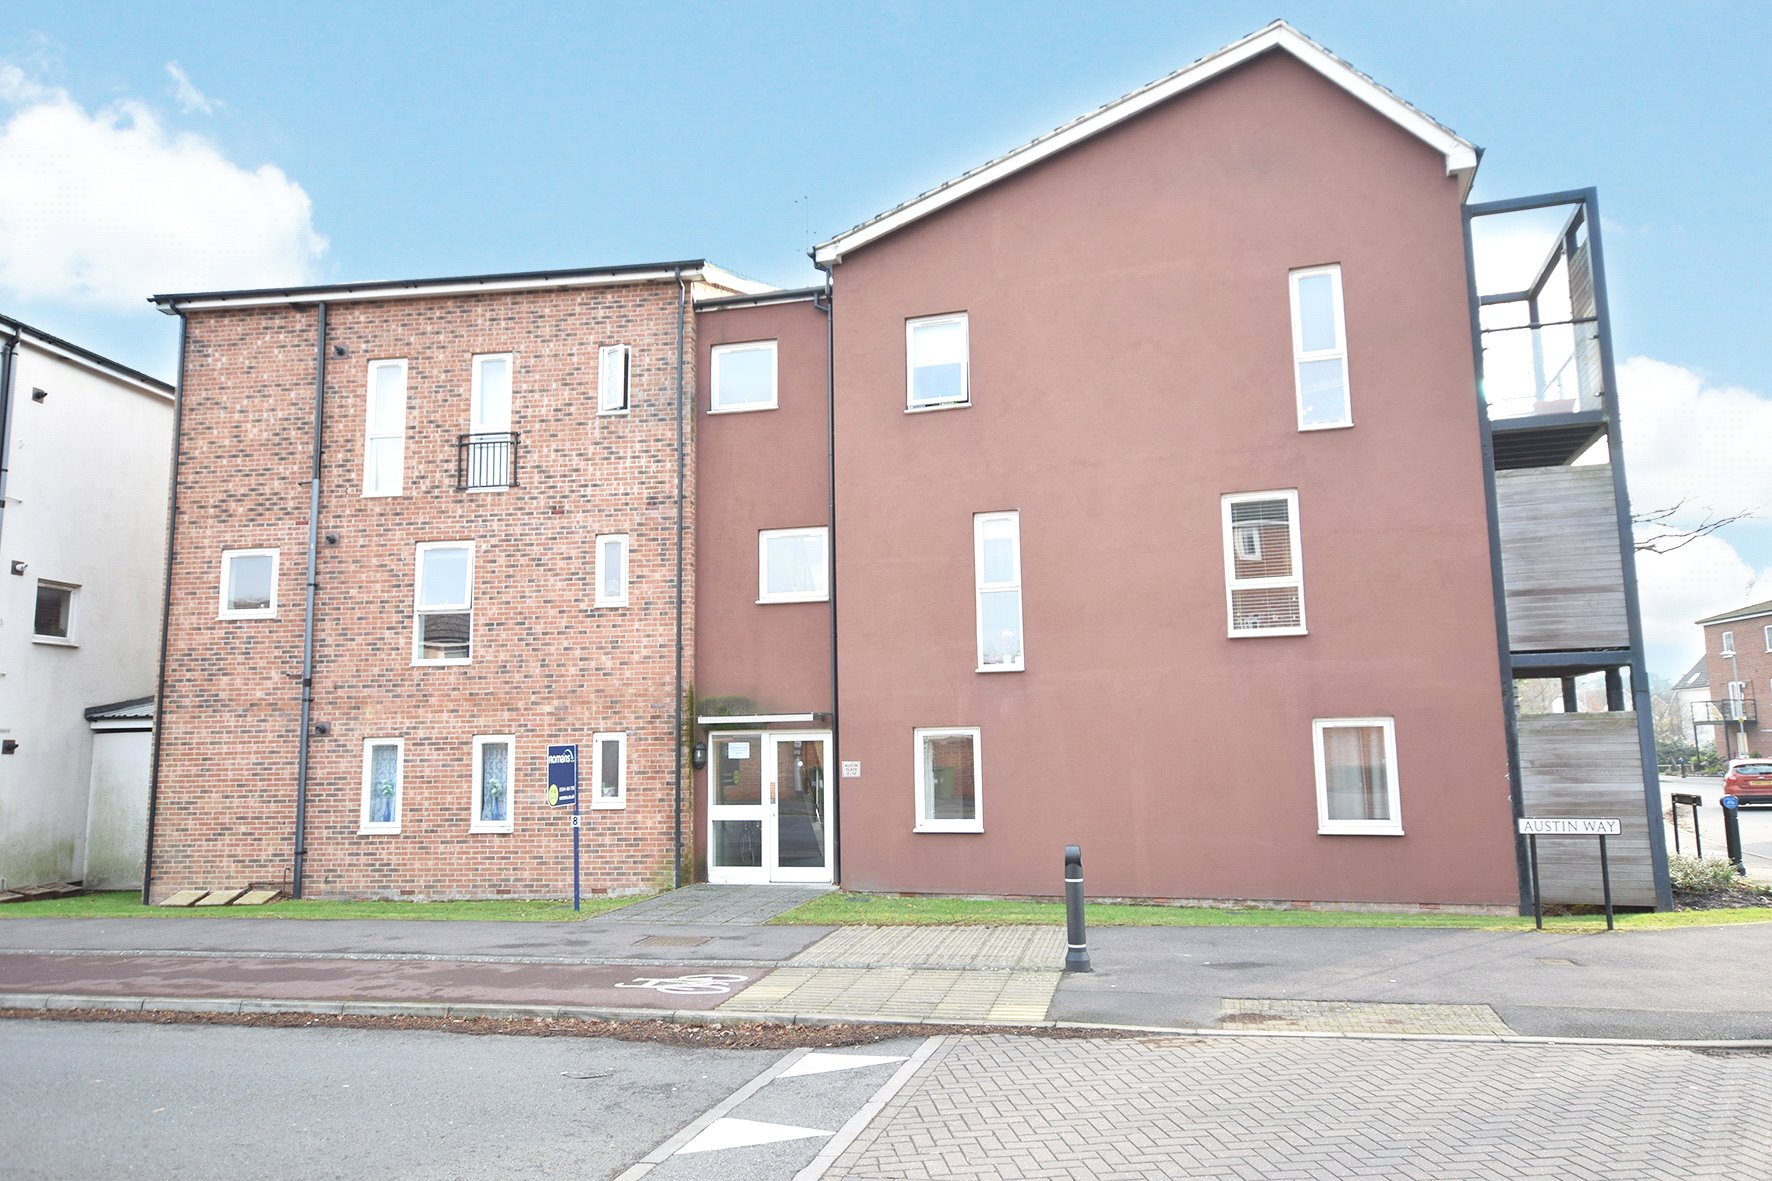 2 Bedrooms Apartment Flat for sale in Austin Way, Bracknell, Berkshire, RG12